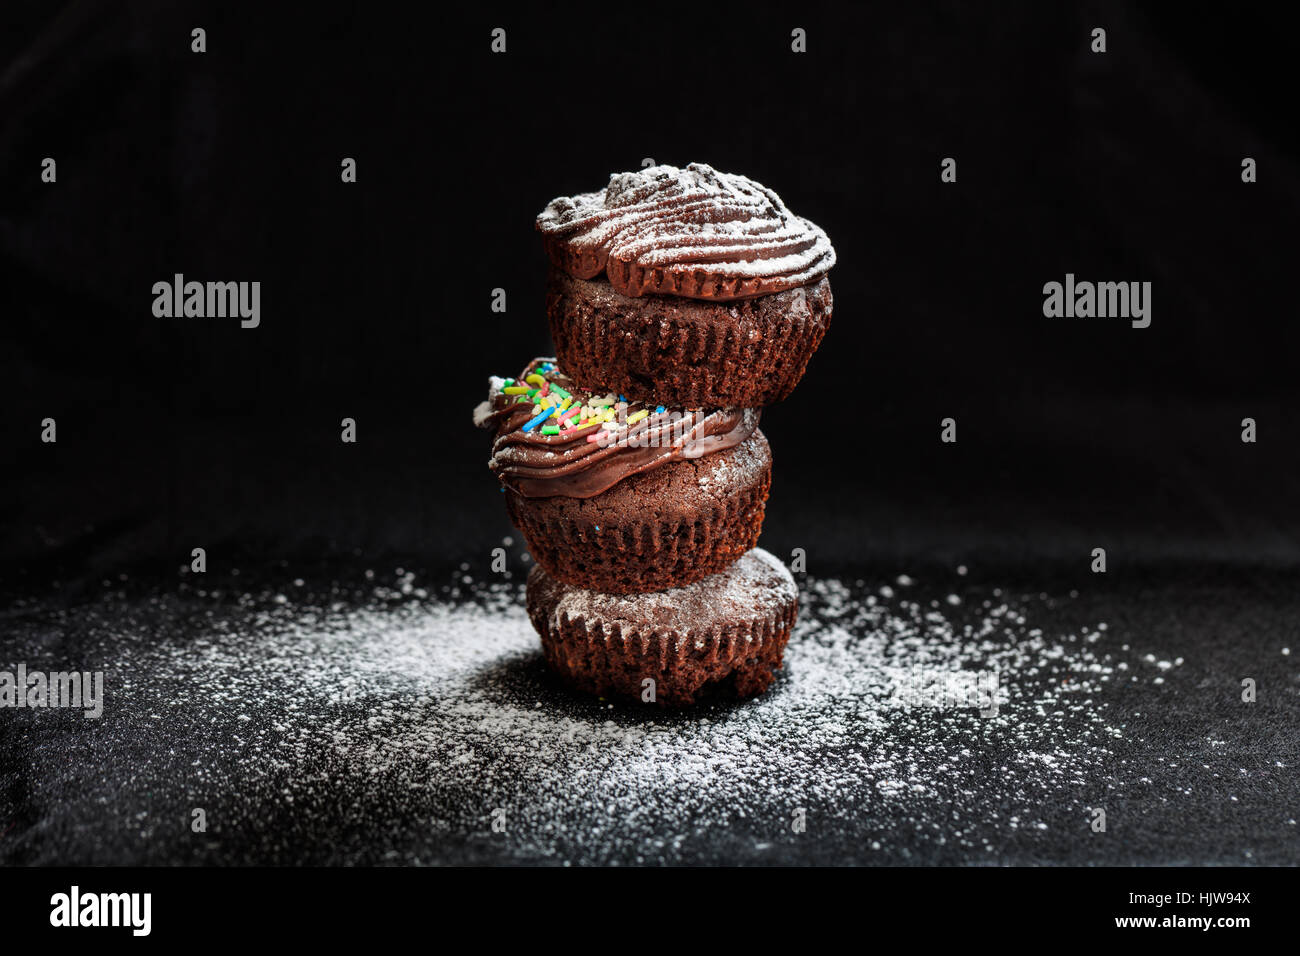 A pile of cakes on a black background - Stock Image